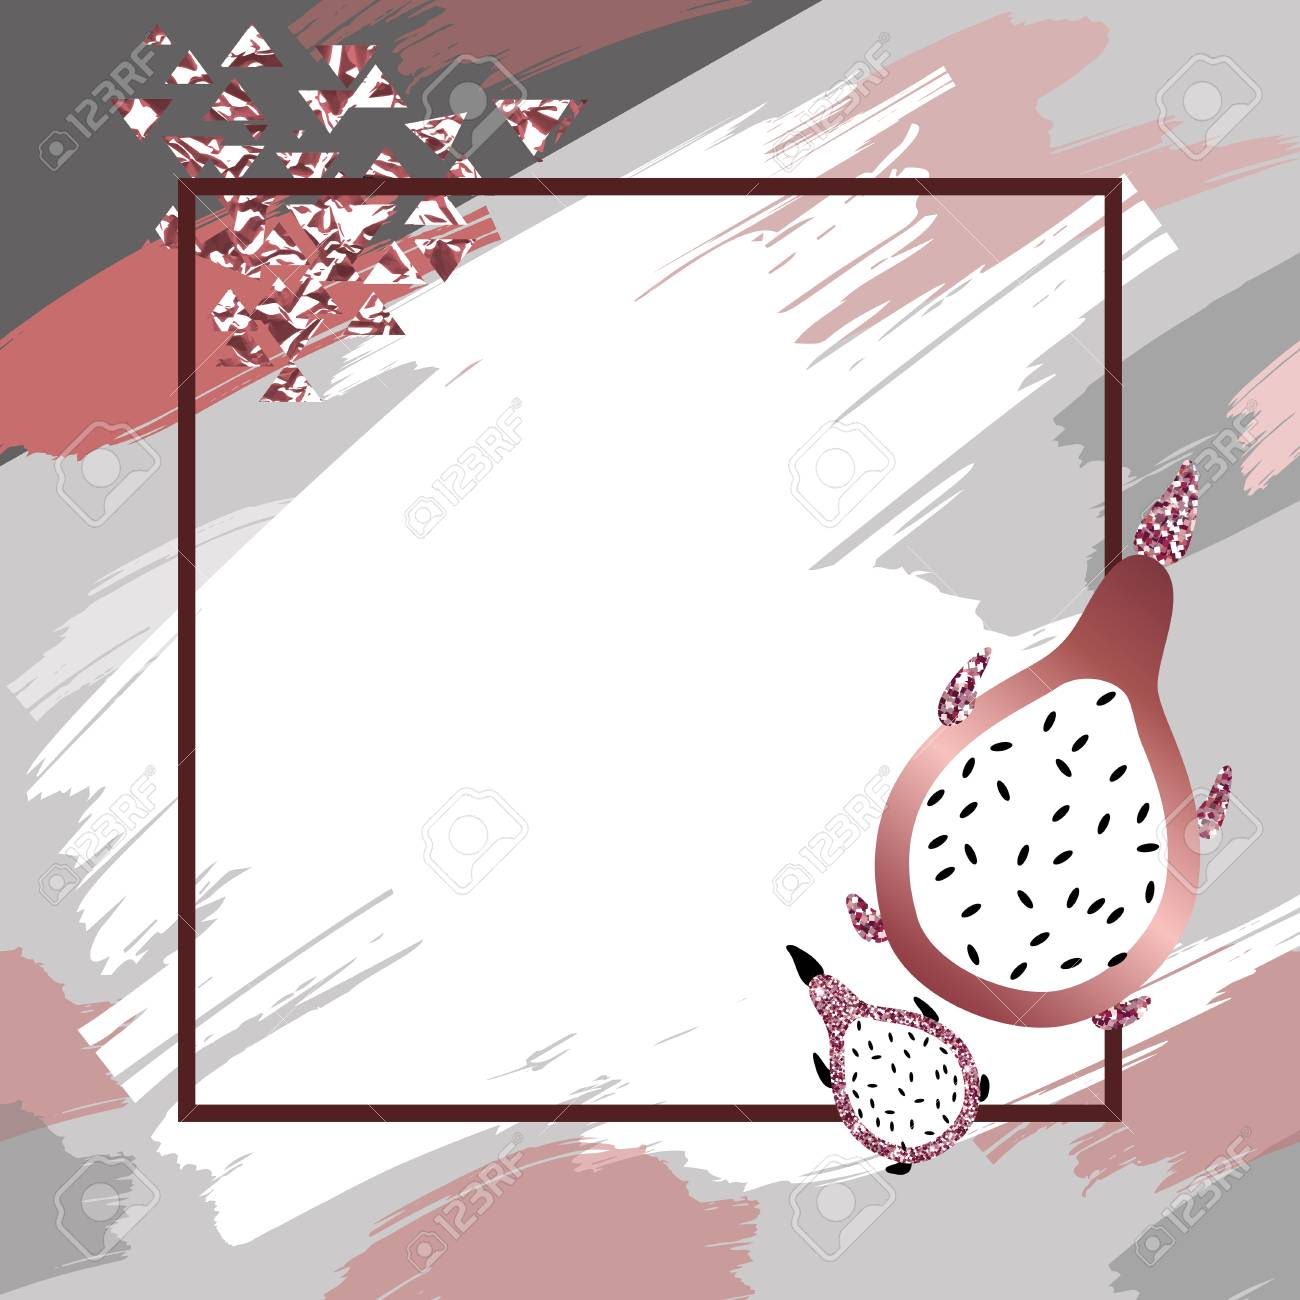 81593073 dragon fruit and marble rose background in trendy minimalist geometric style with stone foil glitter